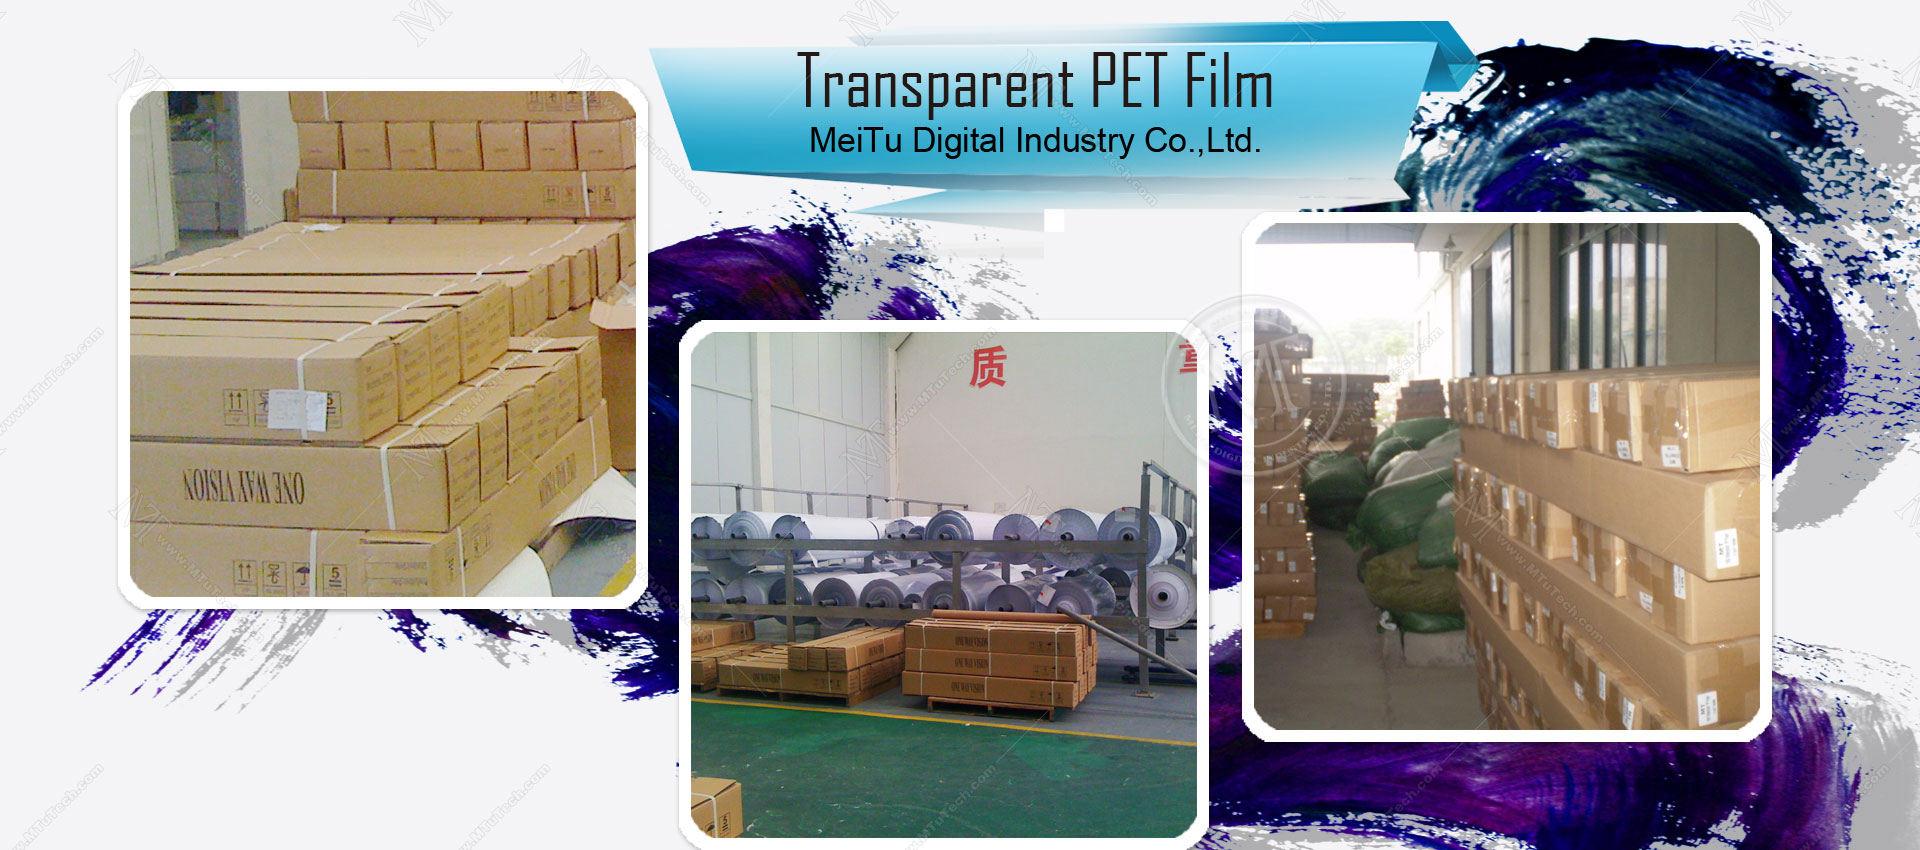 Transparent PET Film